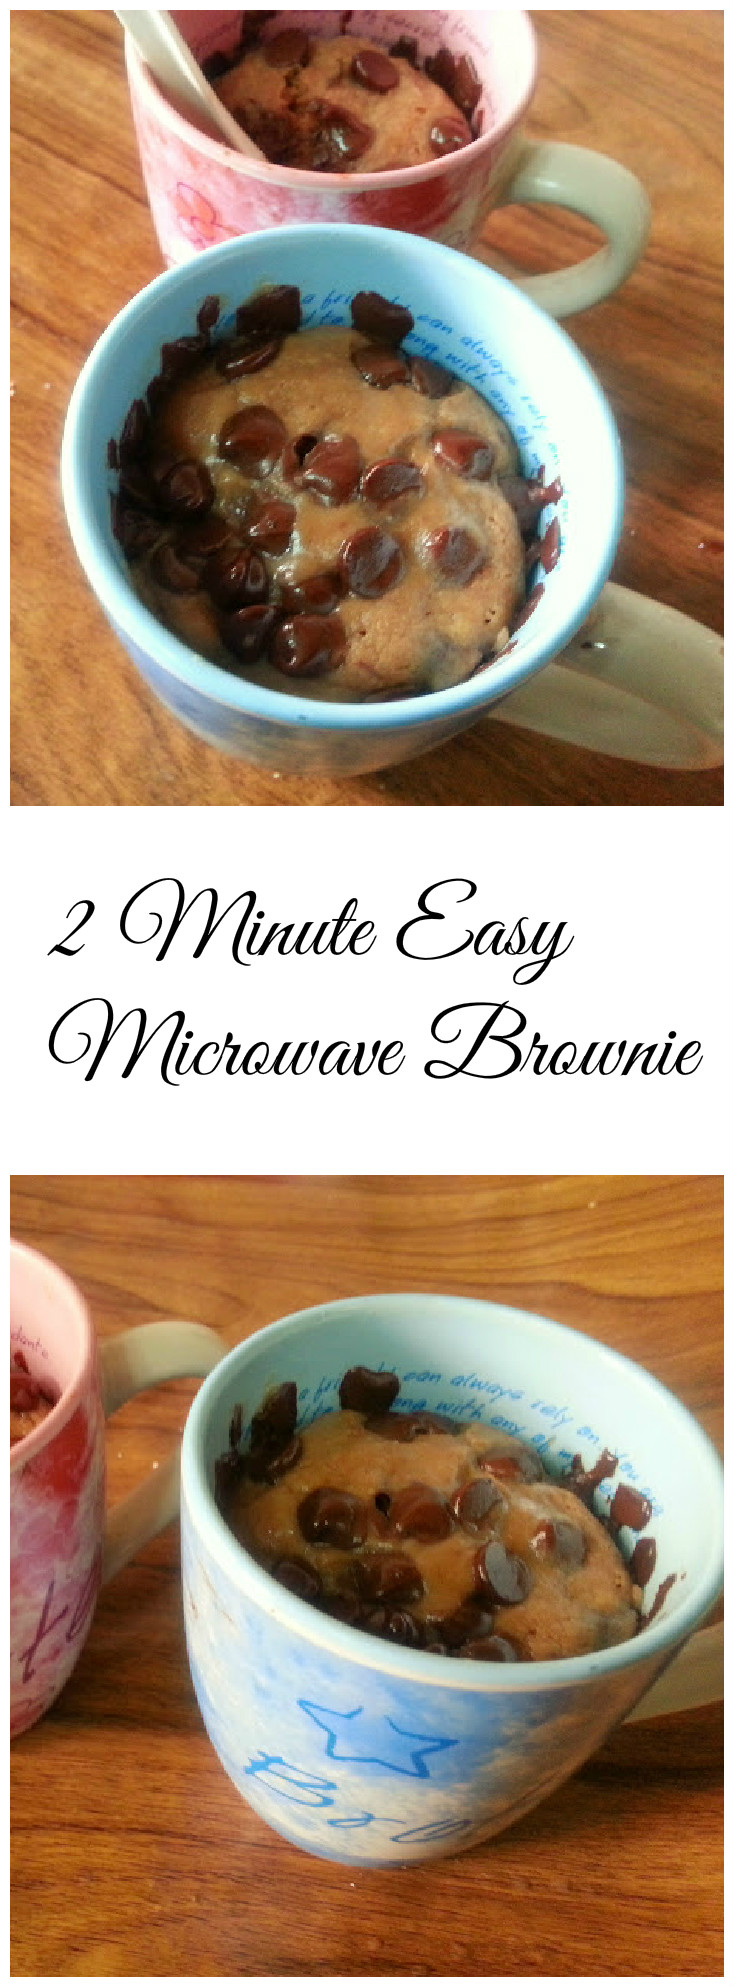 2 Minute Easy Microwave Brownie